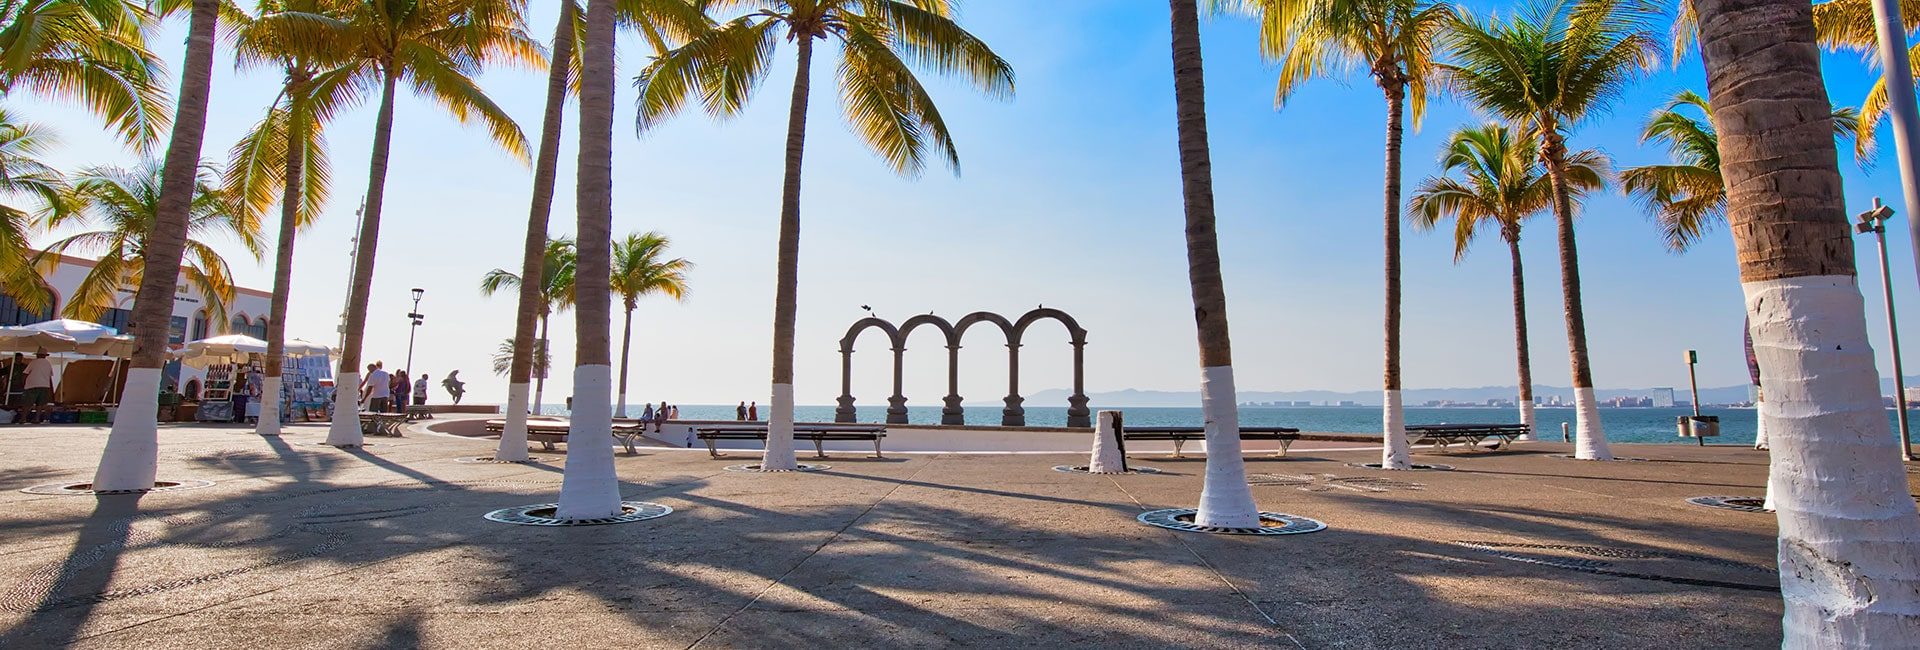 Arches Of Puerto Vallarta On The Malecon